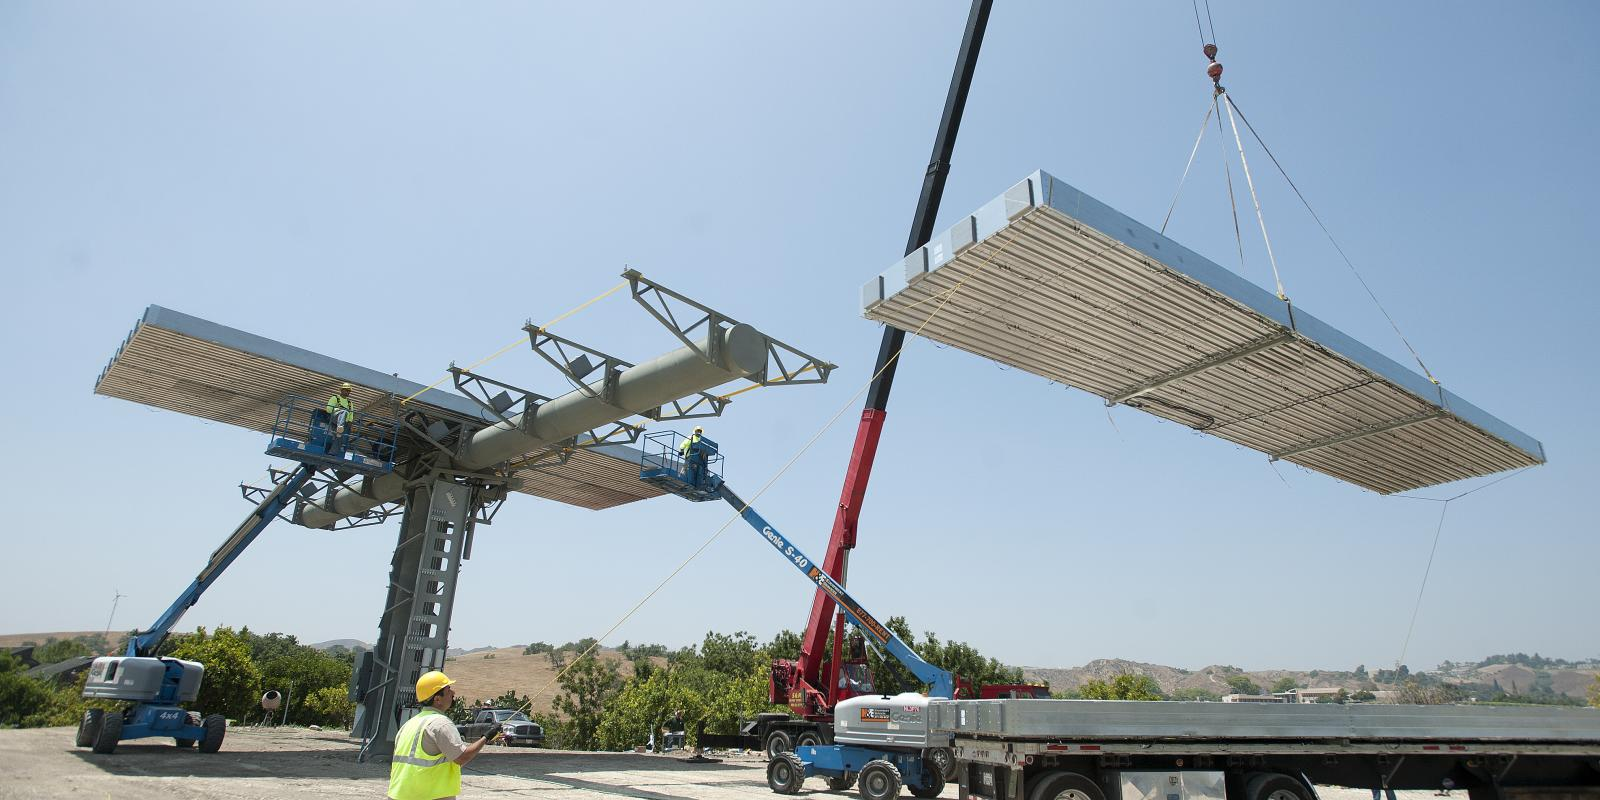 Workers install solar panels at the Lyle Center, June 2010